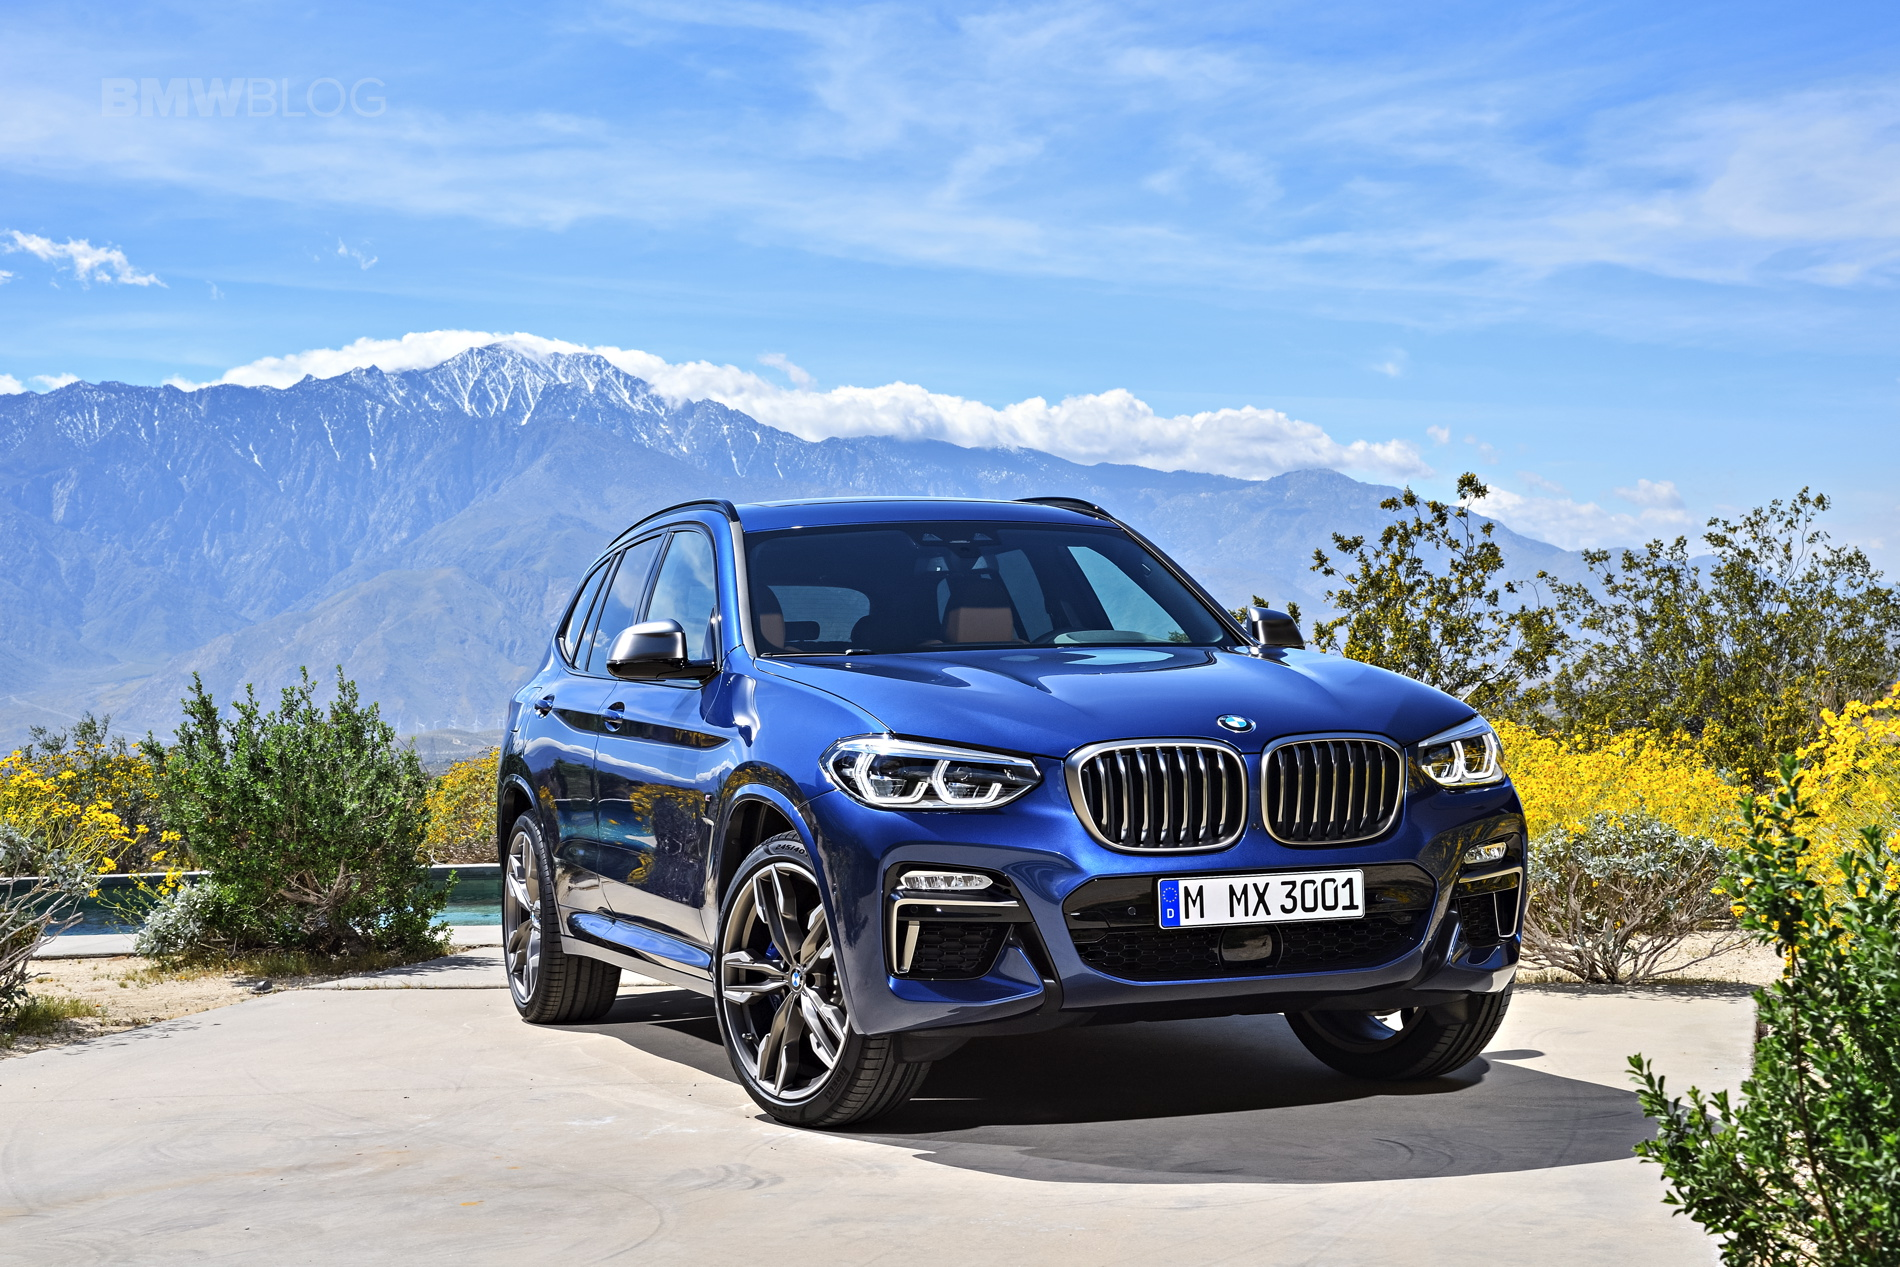 2018 BMW X3 G01 official photos 05